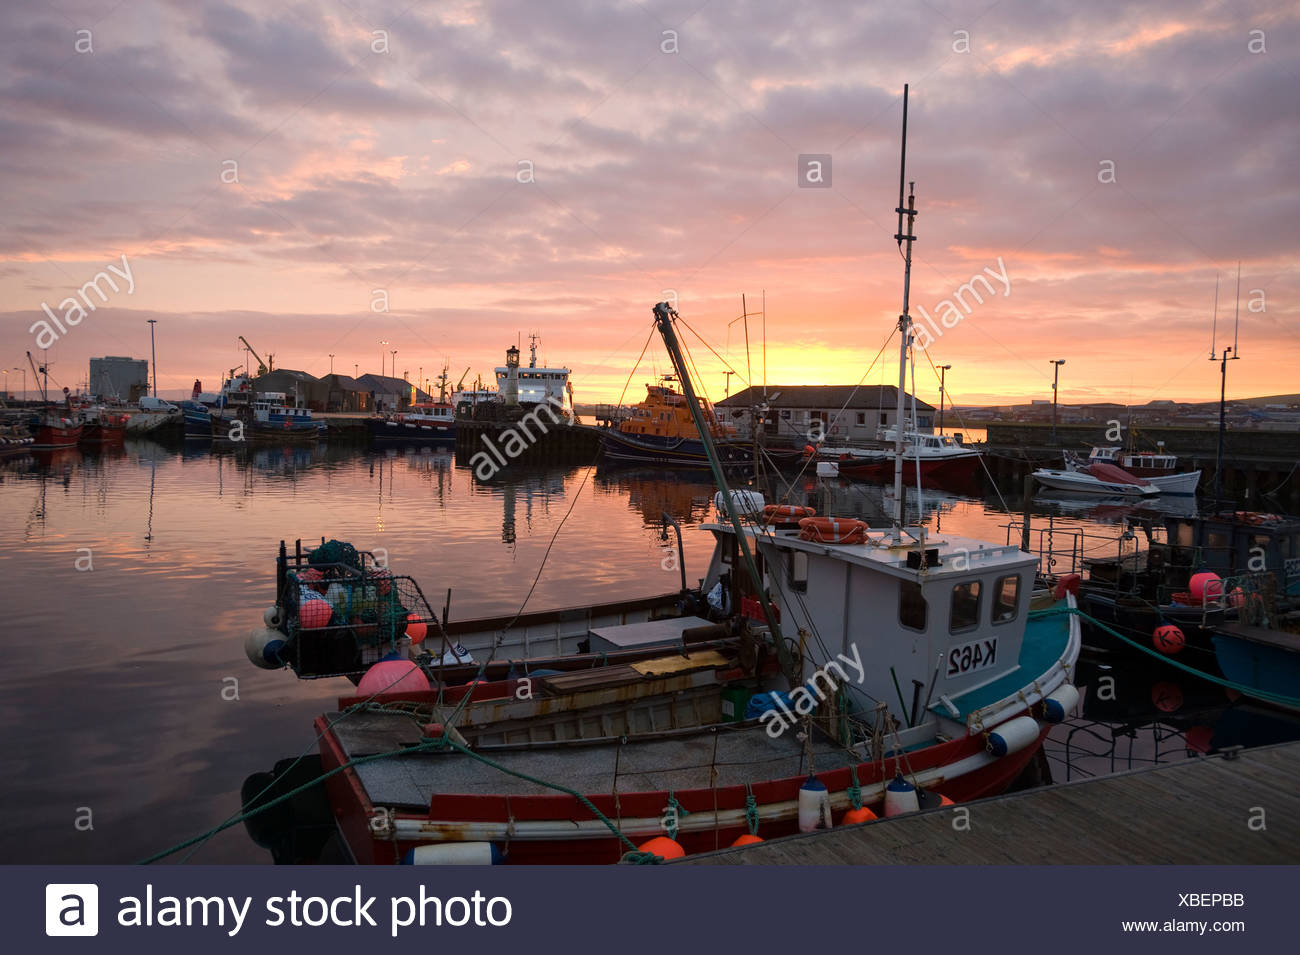 Fishing boats in the harbor, Kirkwall, Orkney Islands, Scotland, United Kingdom, Europe - Stock Image